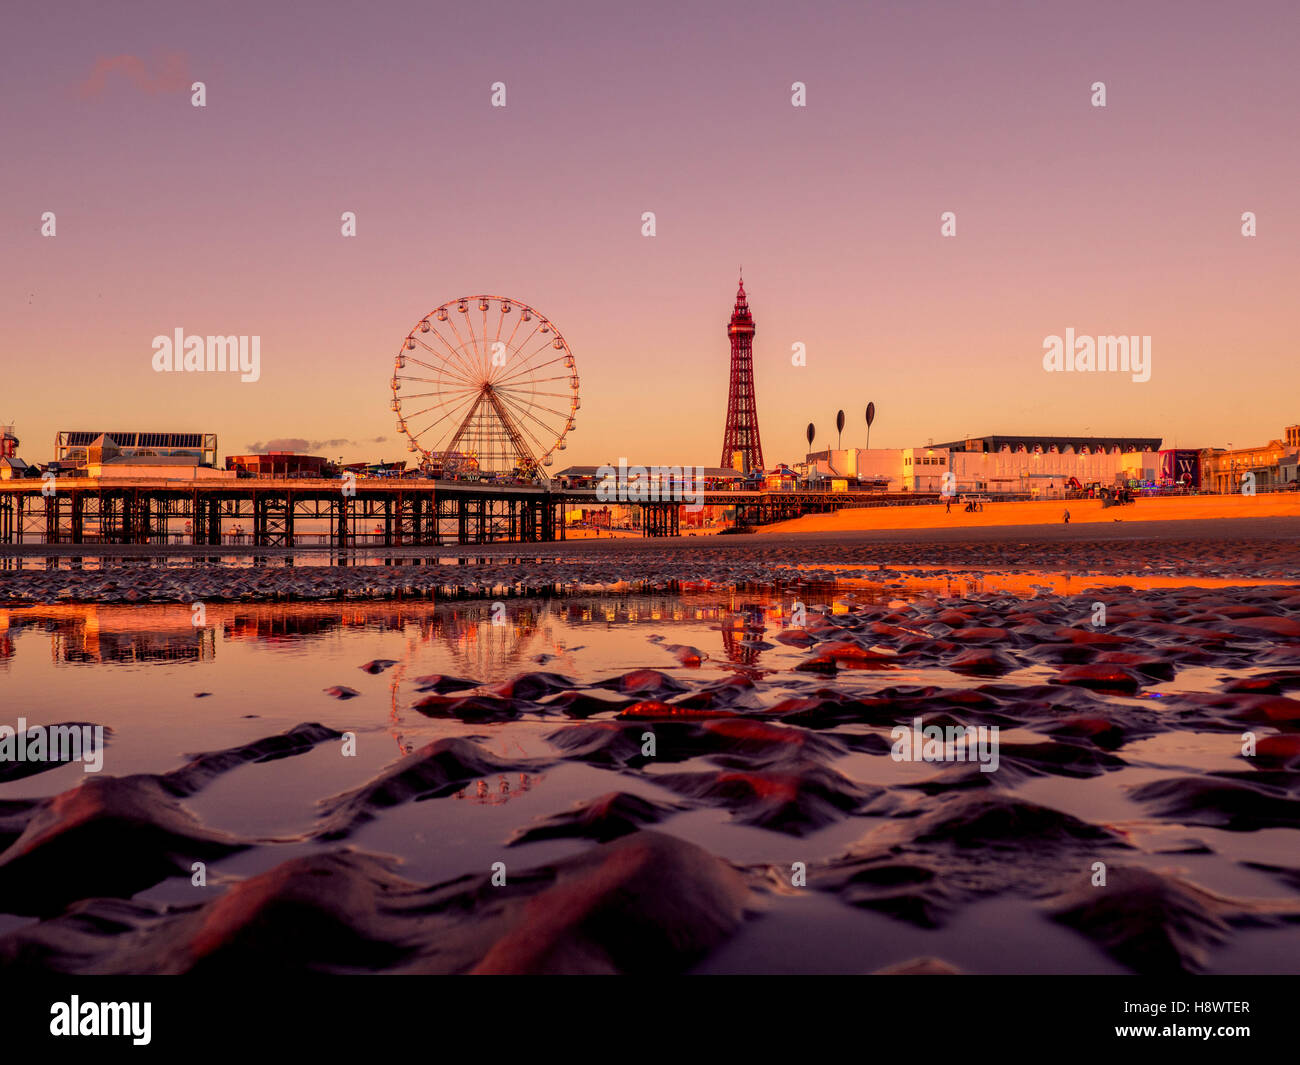 Blackpool Tower and Central Pier with reflection in water on beach at sunset, Lancashire, UK. Stock Photo